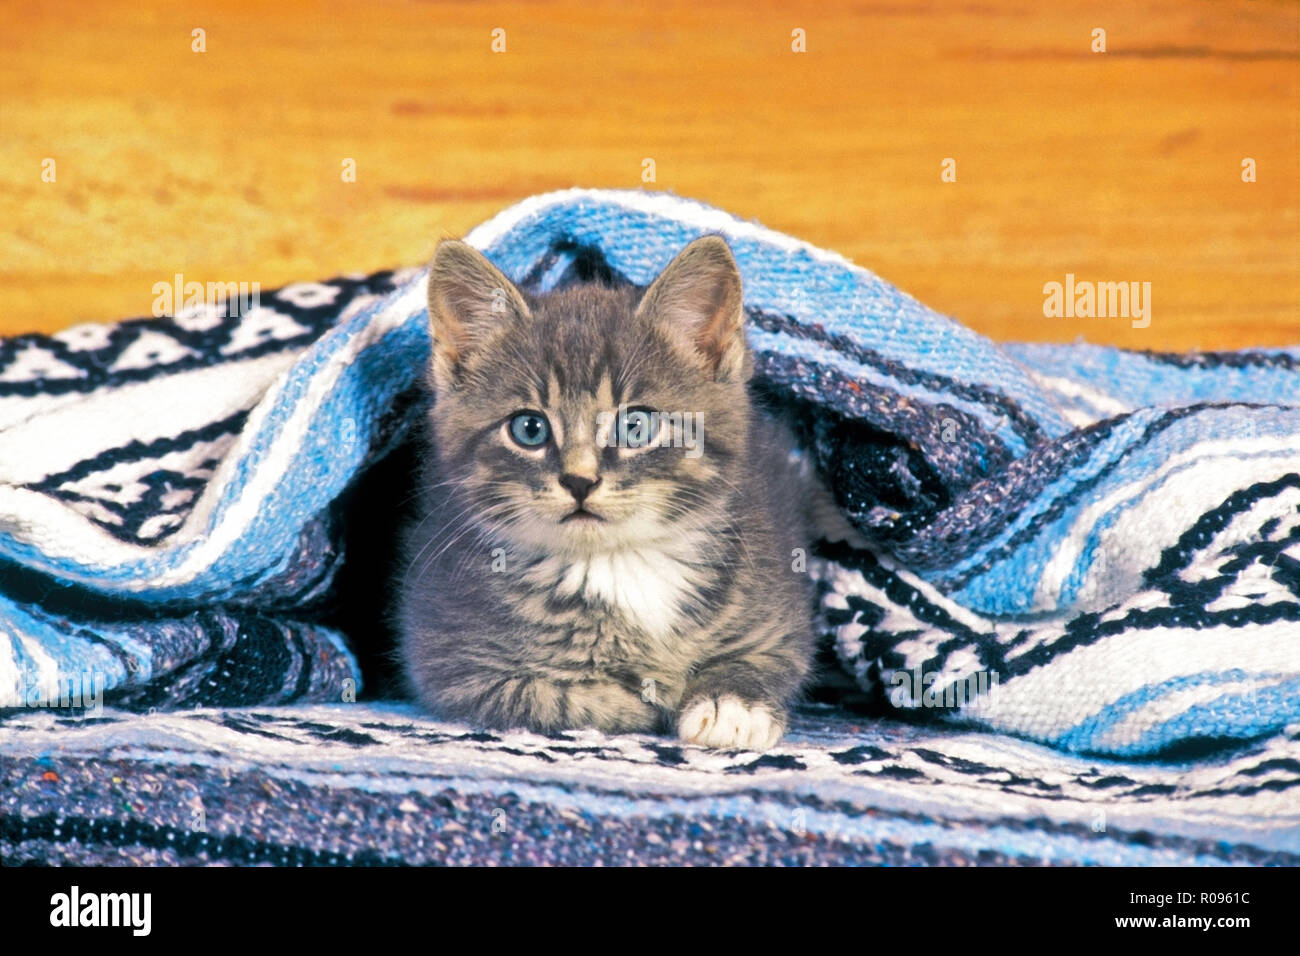 Kitten gray tabby laying under blanket in house, watching - Stock Image